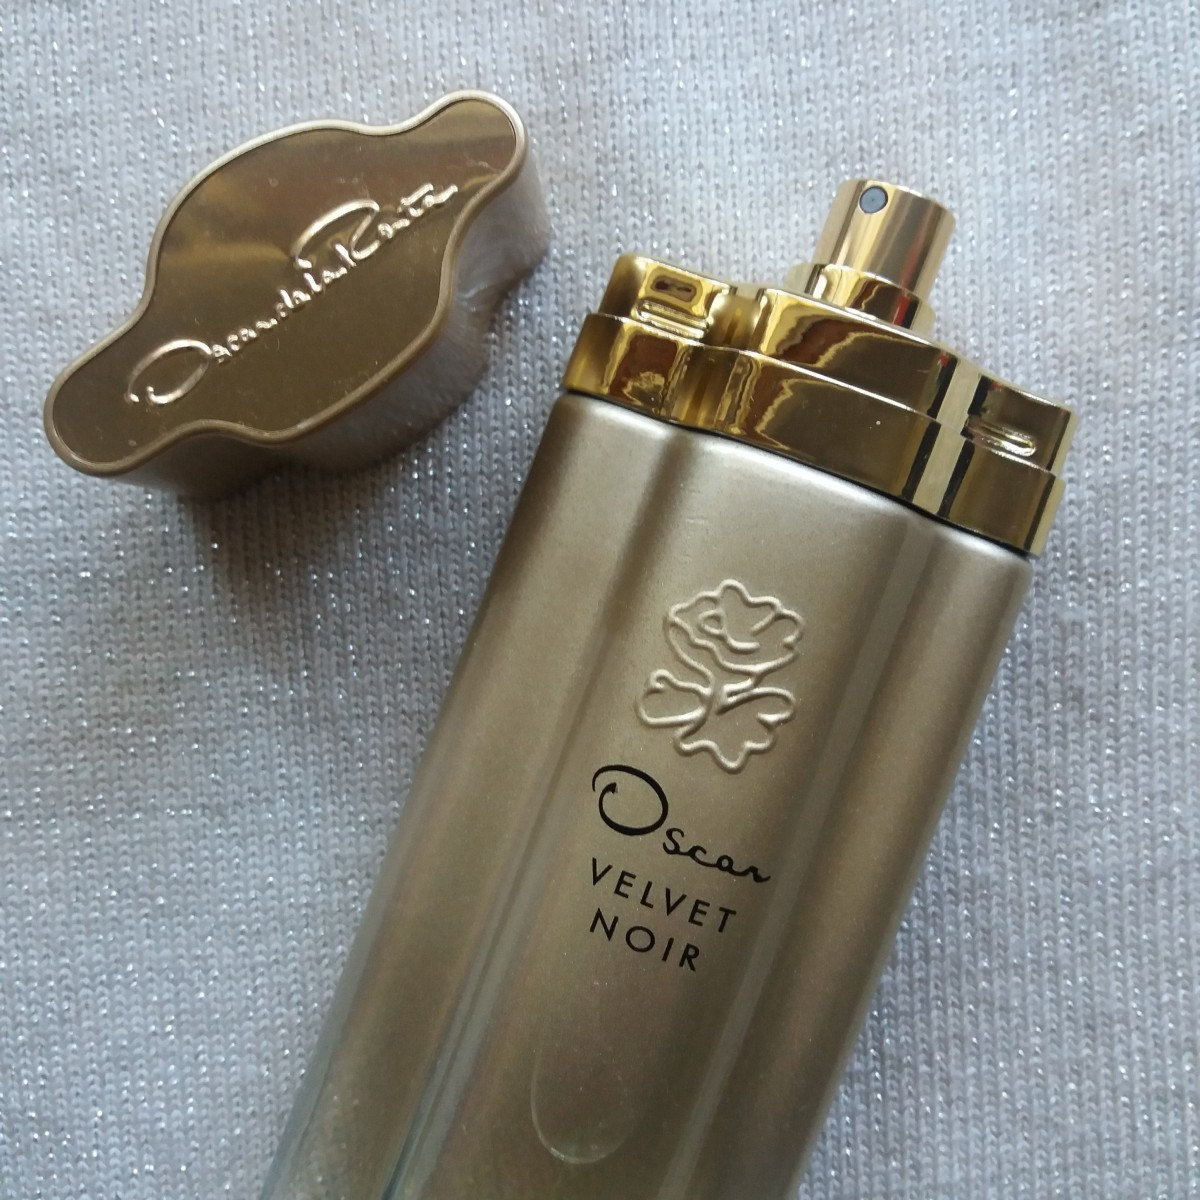 Fragrance fix friday: Oscar Velvet noir EDP